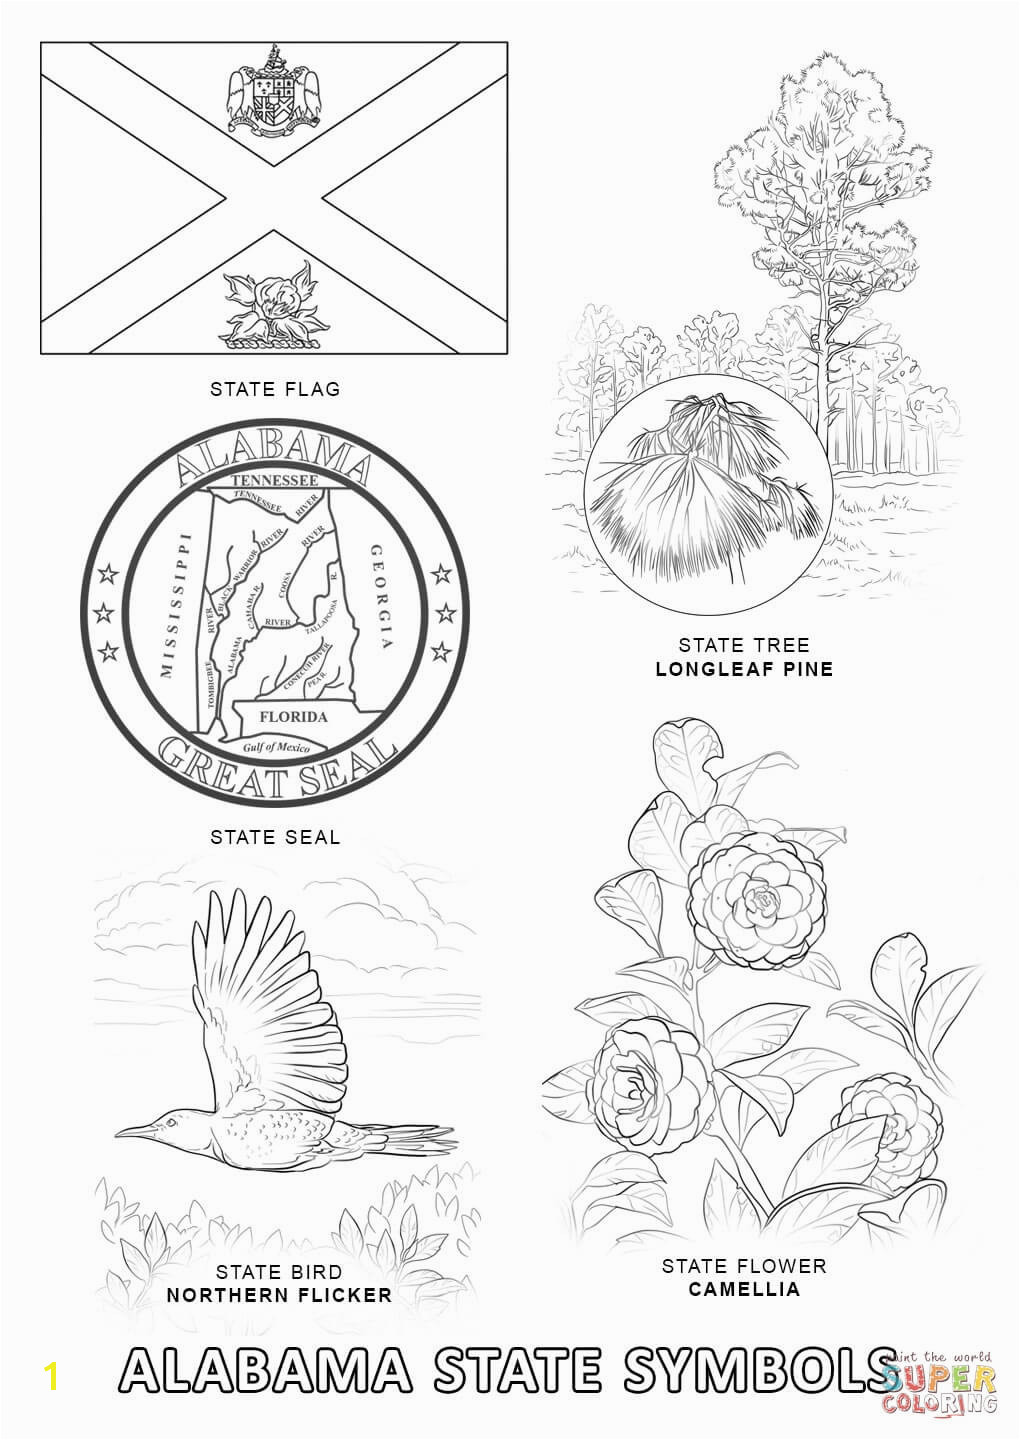 the Alabama State Symbols coloring pages to view printable version or color it online patible with iPad and Android tablets